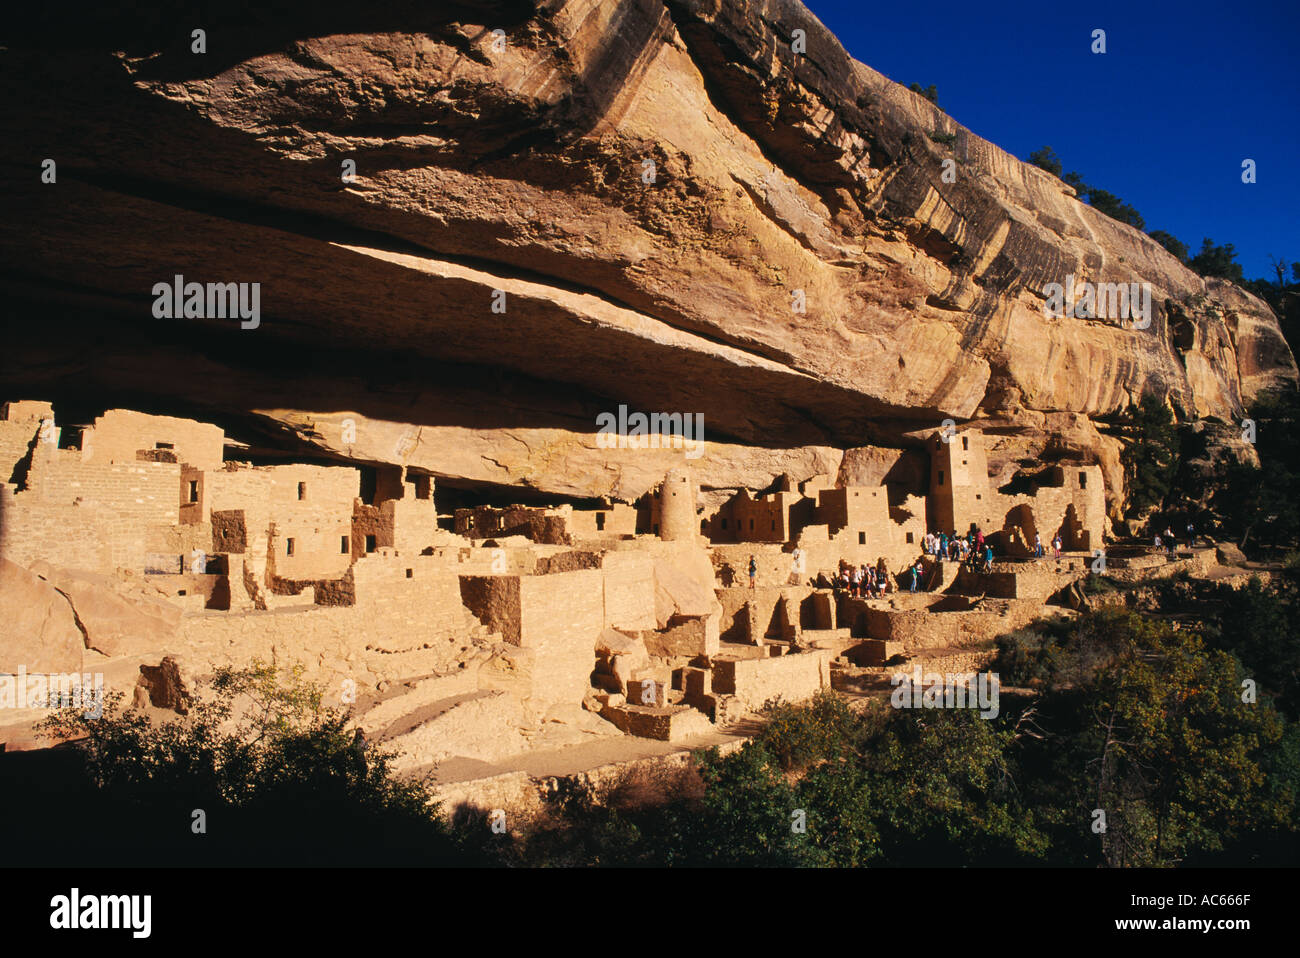 The Cliff Palace of the Anasazi Cliff Dwellings in Mesa Verde National Park Colorado - Stock Image